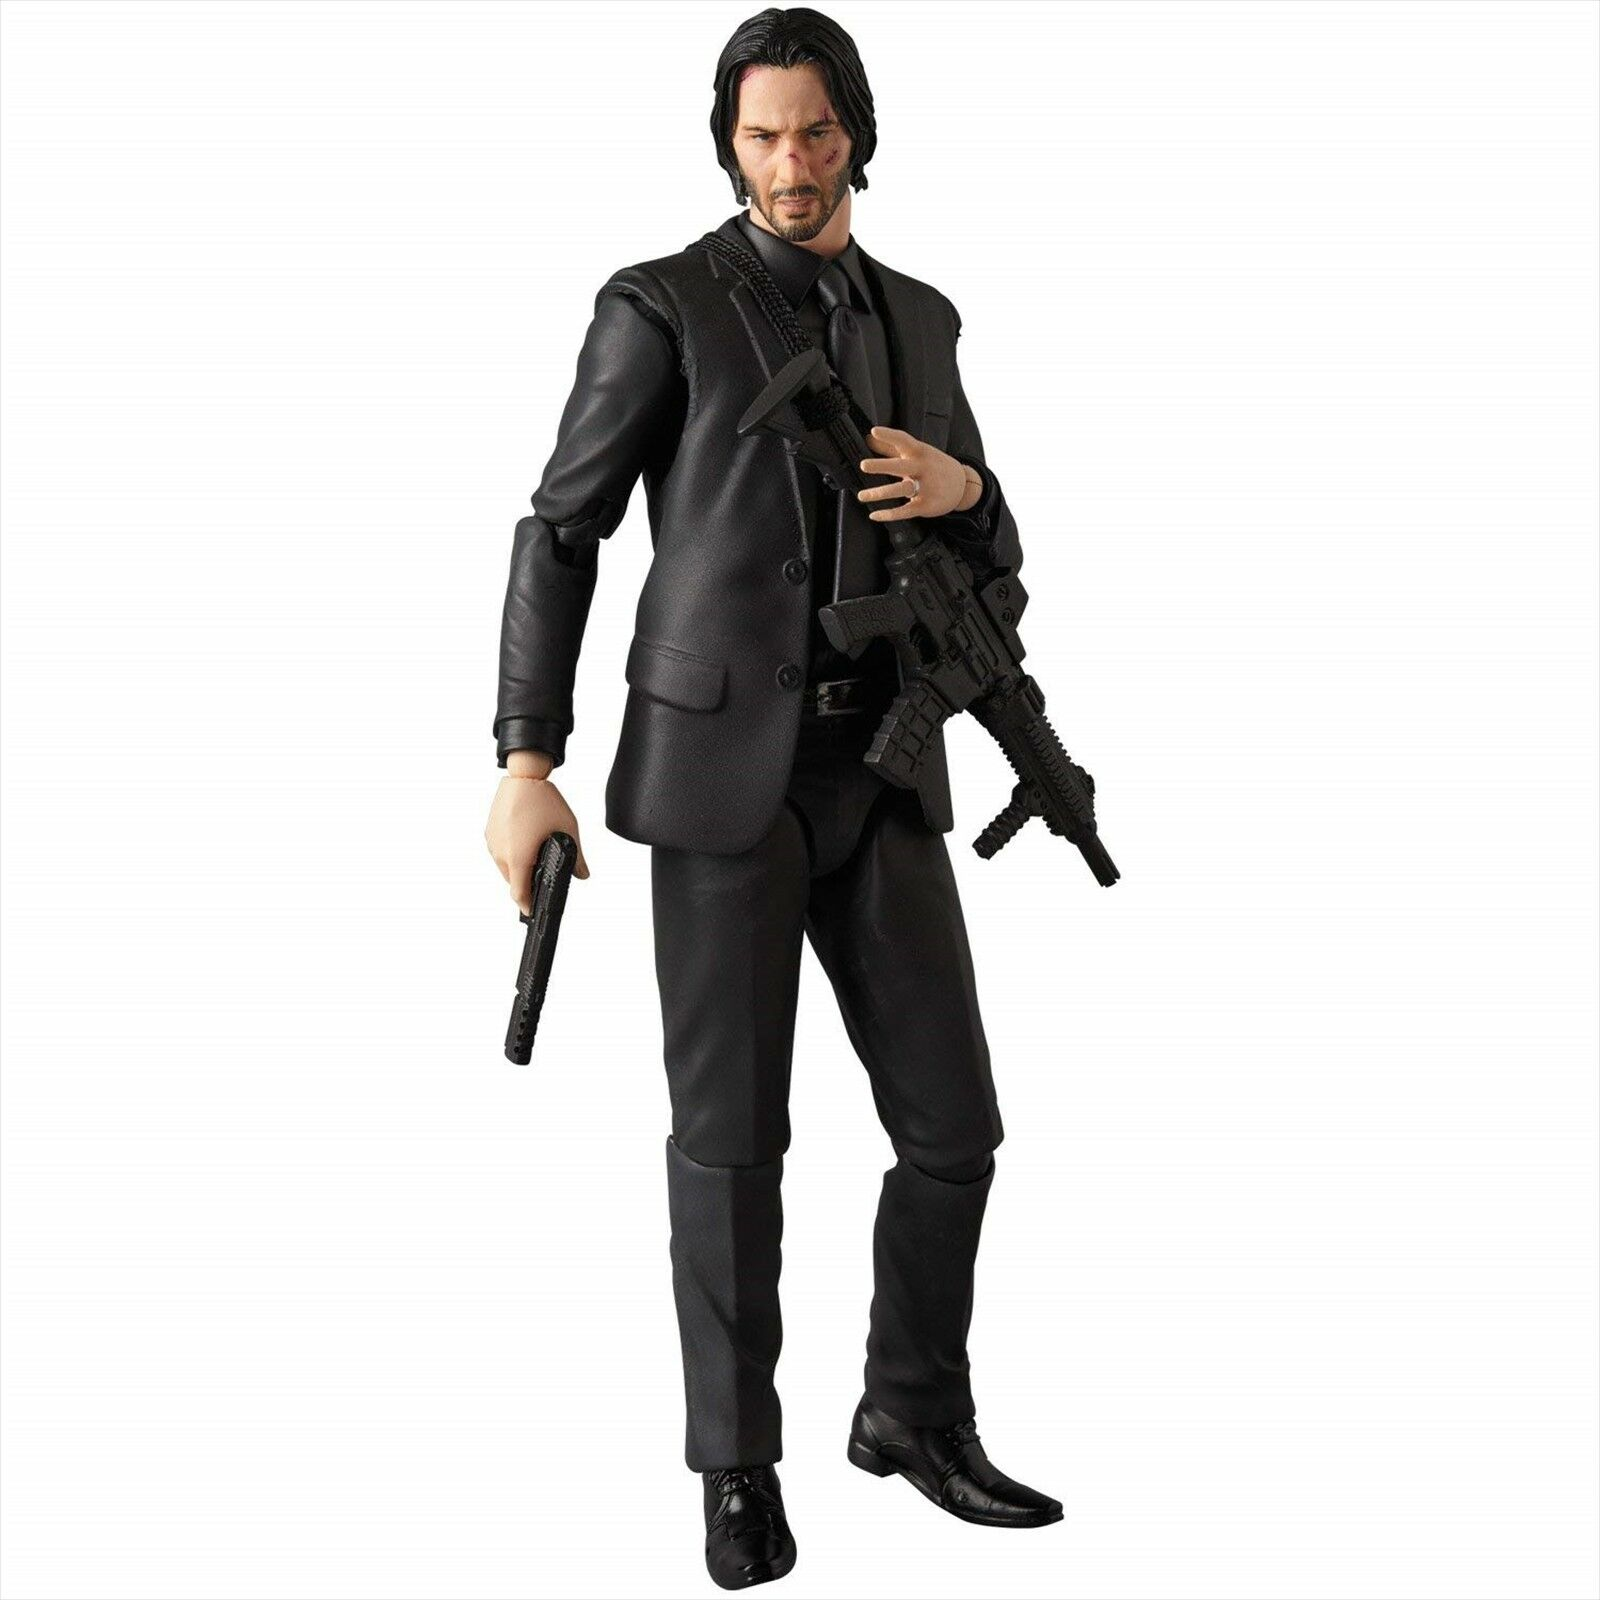 John Wick Medicom Toy Figura No.070 155mm pedido previo